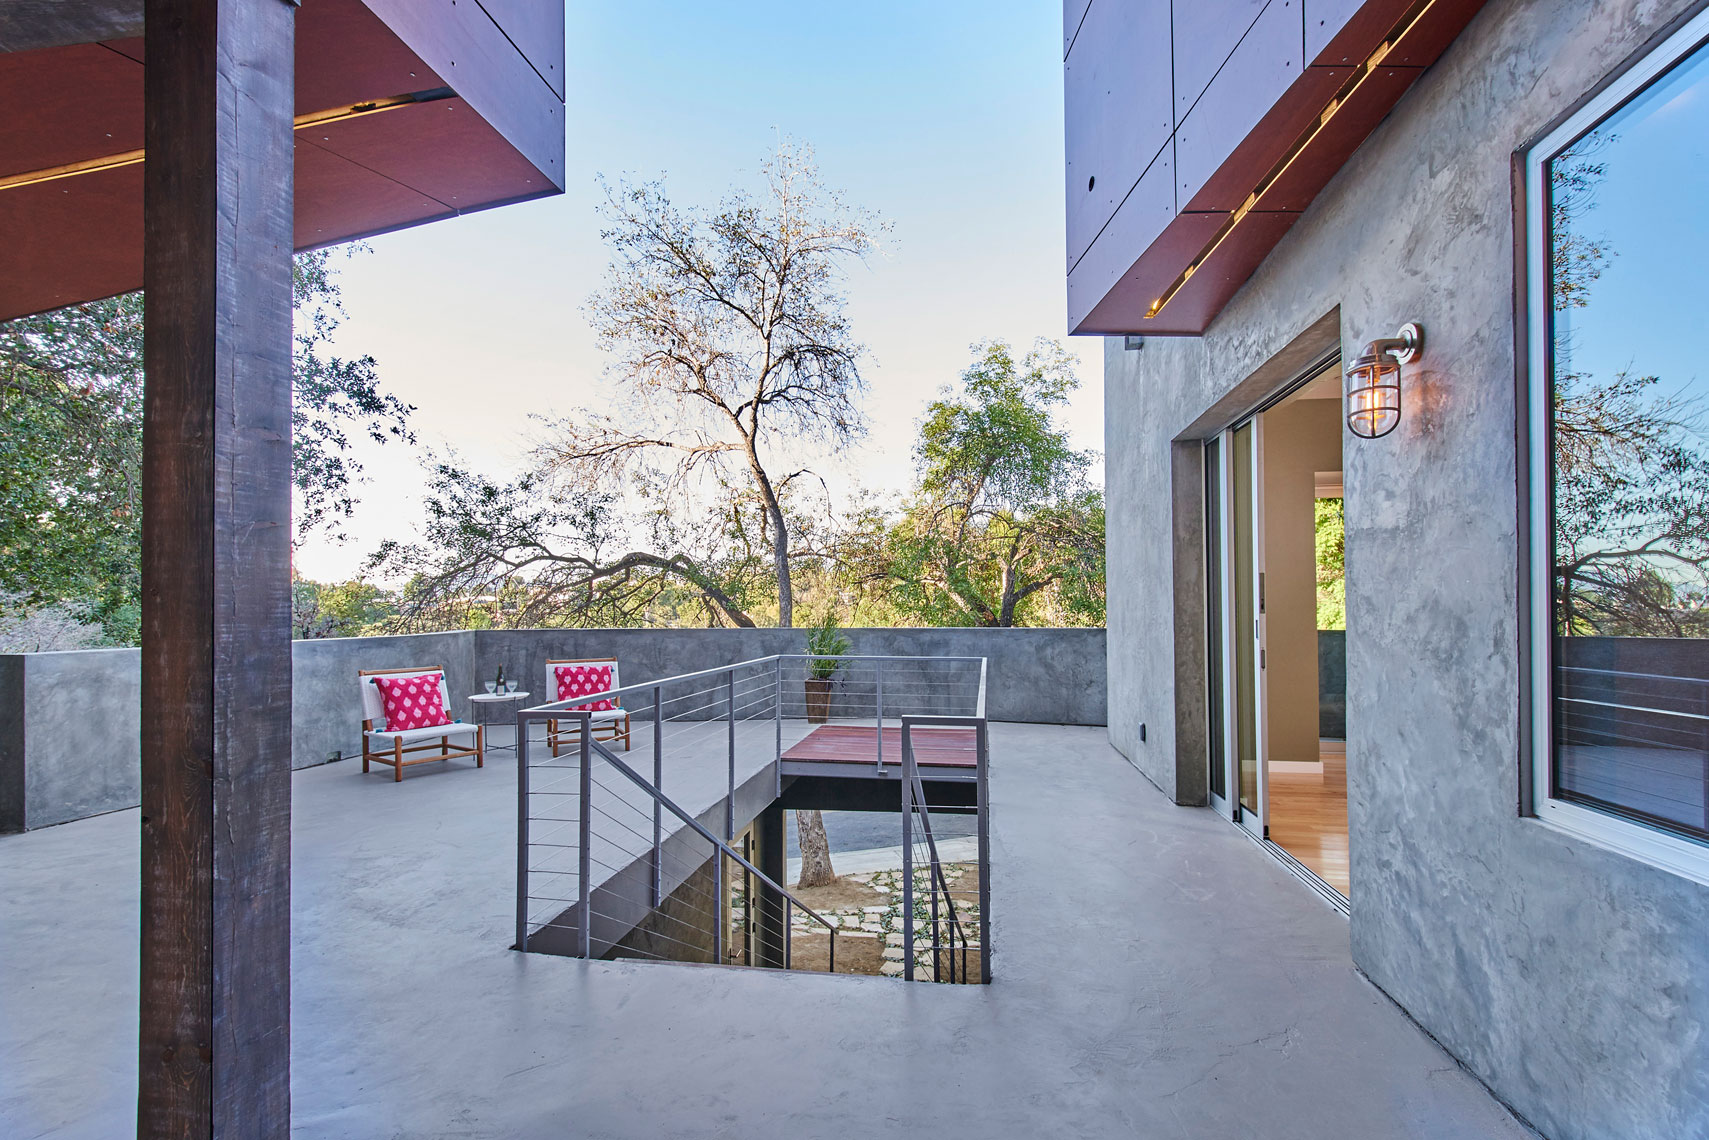 Architectural-photography-of-courtyard-from-front-door-opening-in-contemporary-home-designed-by-Jim-Fenske-Architect